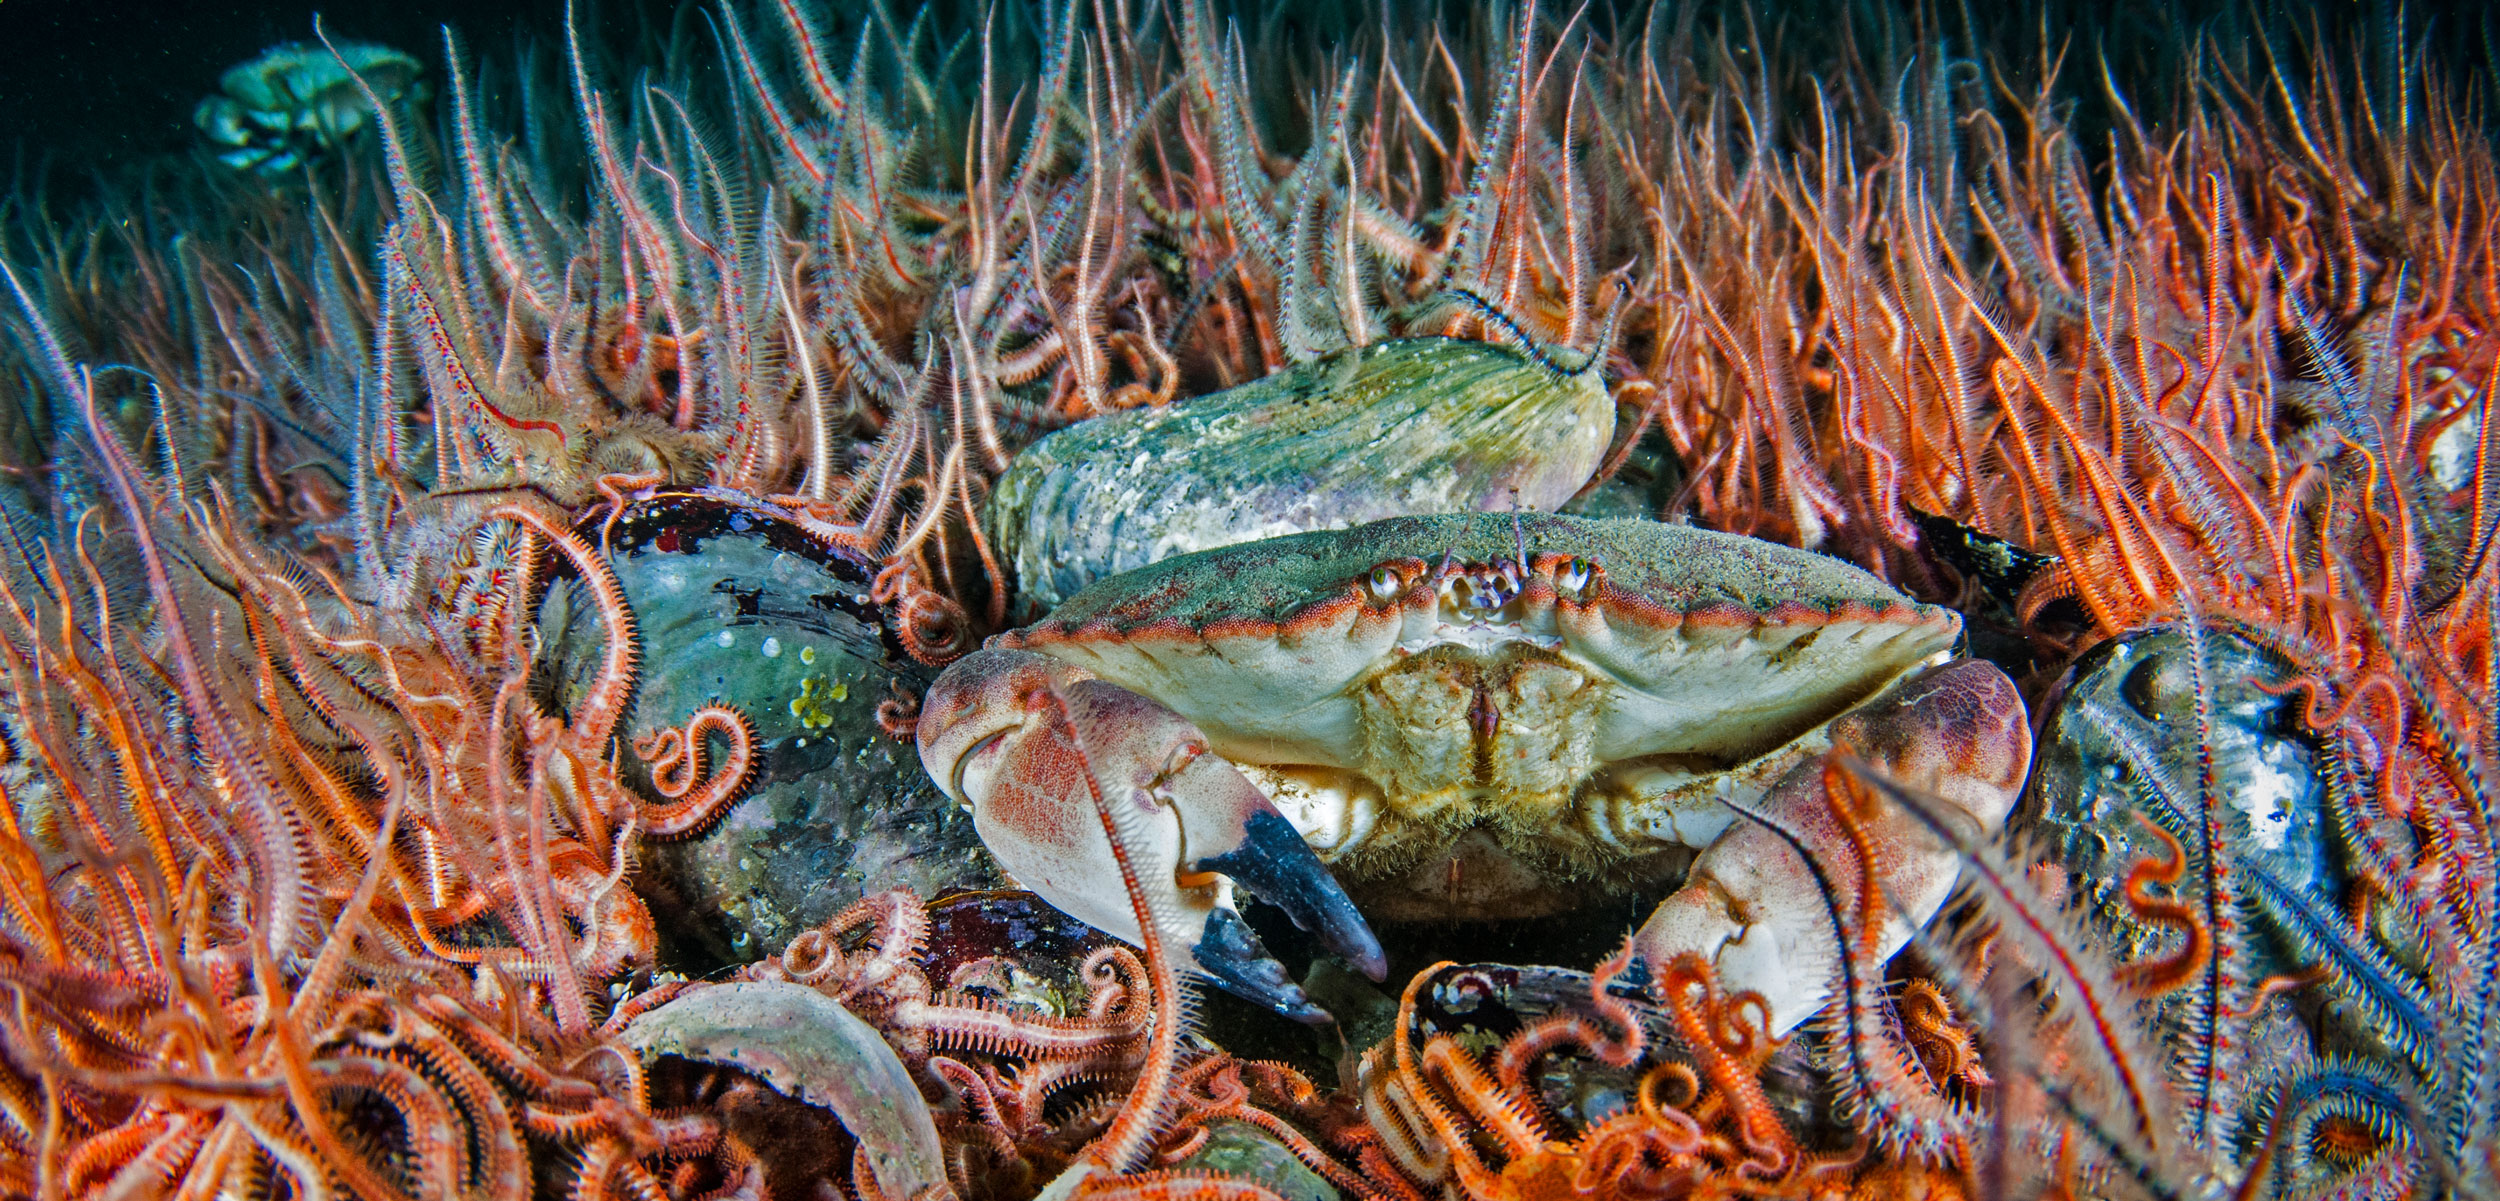 edible crab surrounded by brittle stars